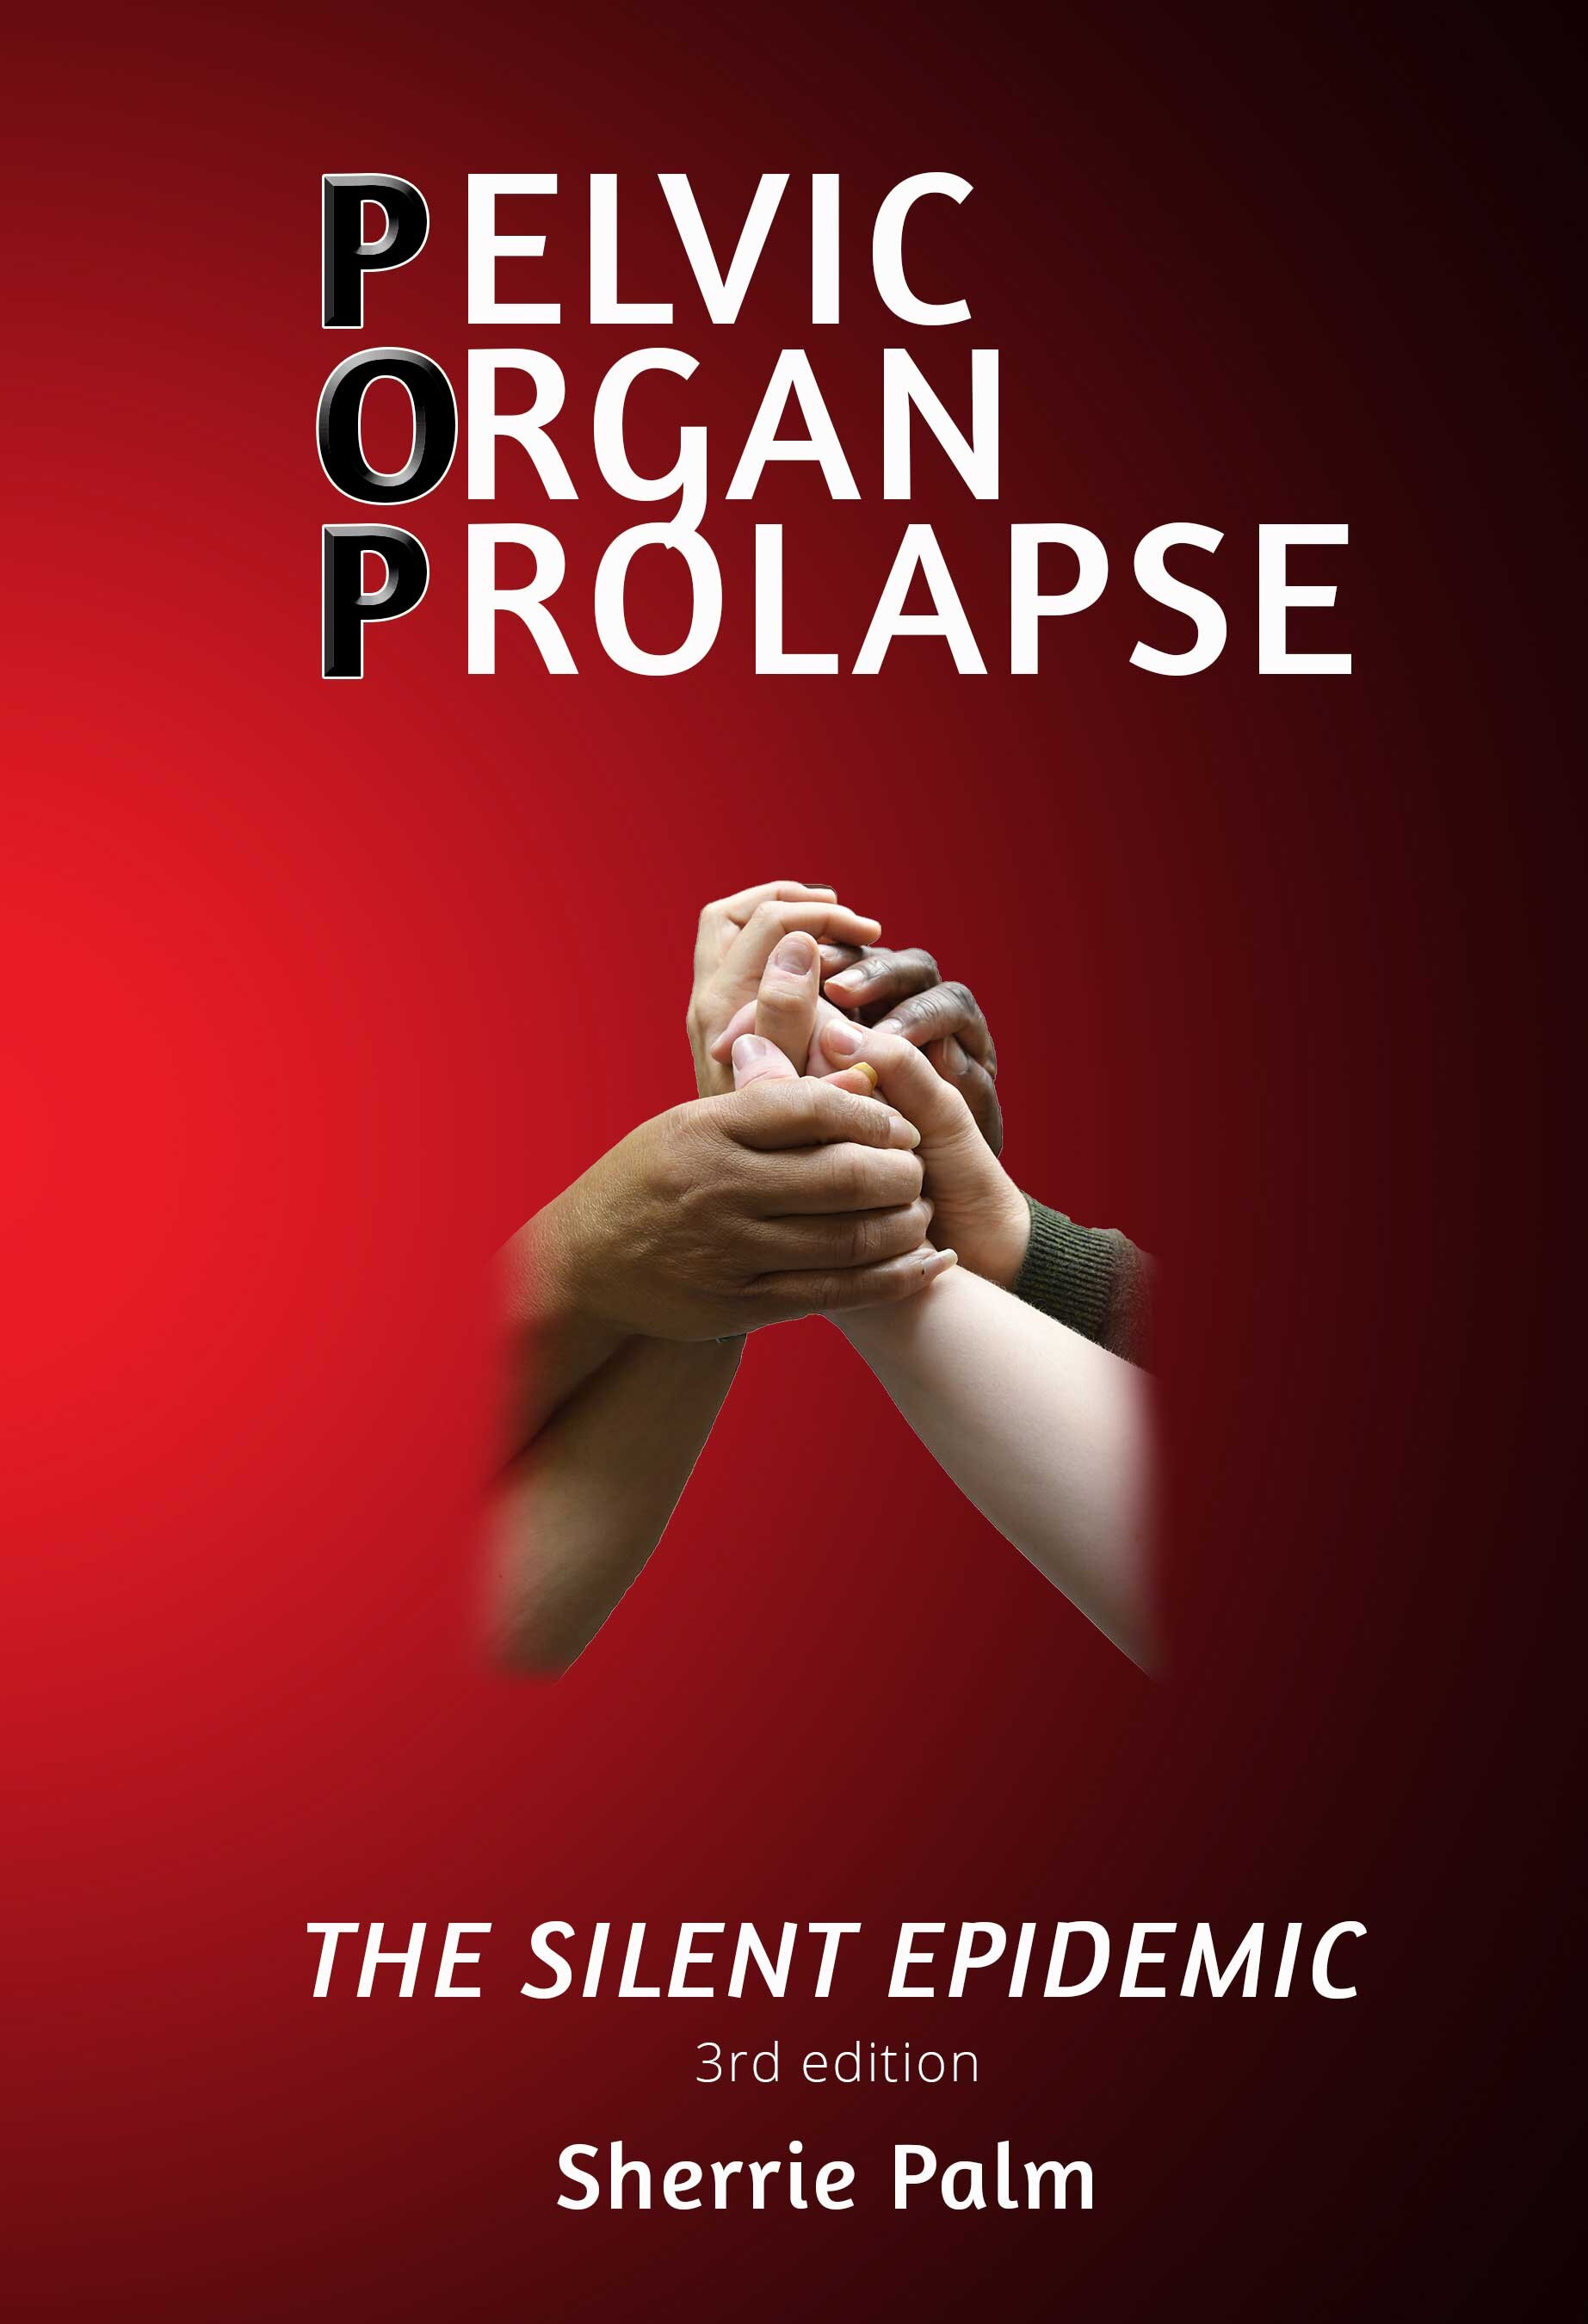 """""""A frank, valuable introduction to a little-known medical condition.""""  -Kirkus Reviews   Get the facts, move past the fear. Pelvic Organ Prolapse: The Silent Epidemic, is a valuable book for women looking for answers about pelvic organ prolapse (POP). For more info,  click here"""